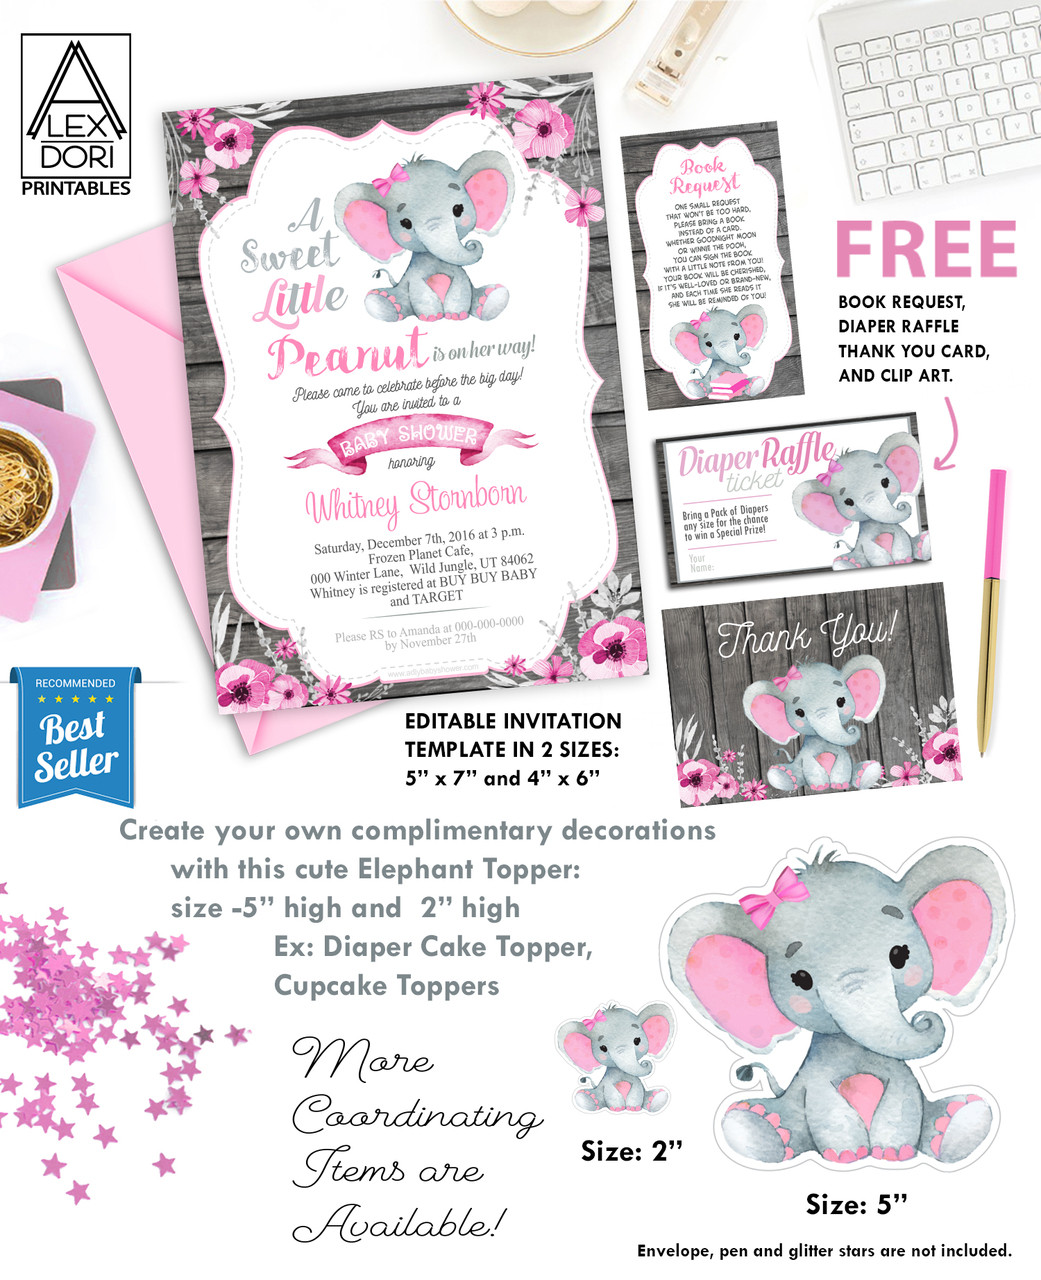 photo about Printable Invitations titled Lady Elephant purple and grey Youngster Shower Invitation, Wood Historical past -Printable Invitation - Peanut Invite-Woman Child Shower-Cost-free Diaper Raffle